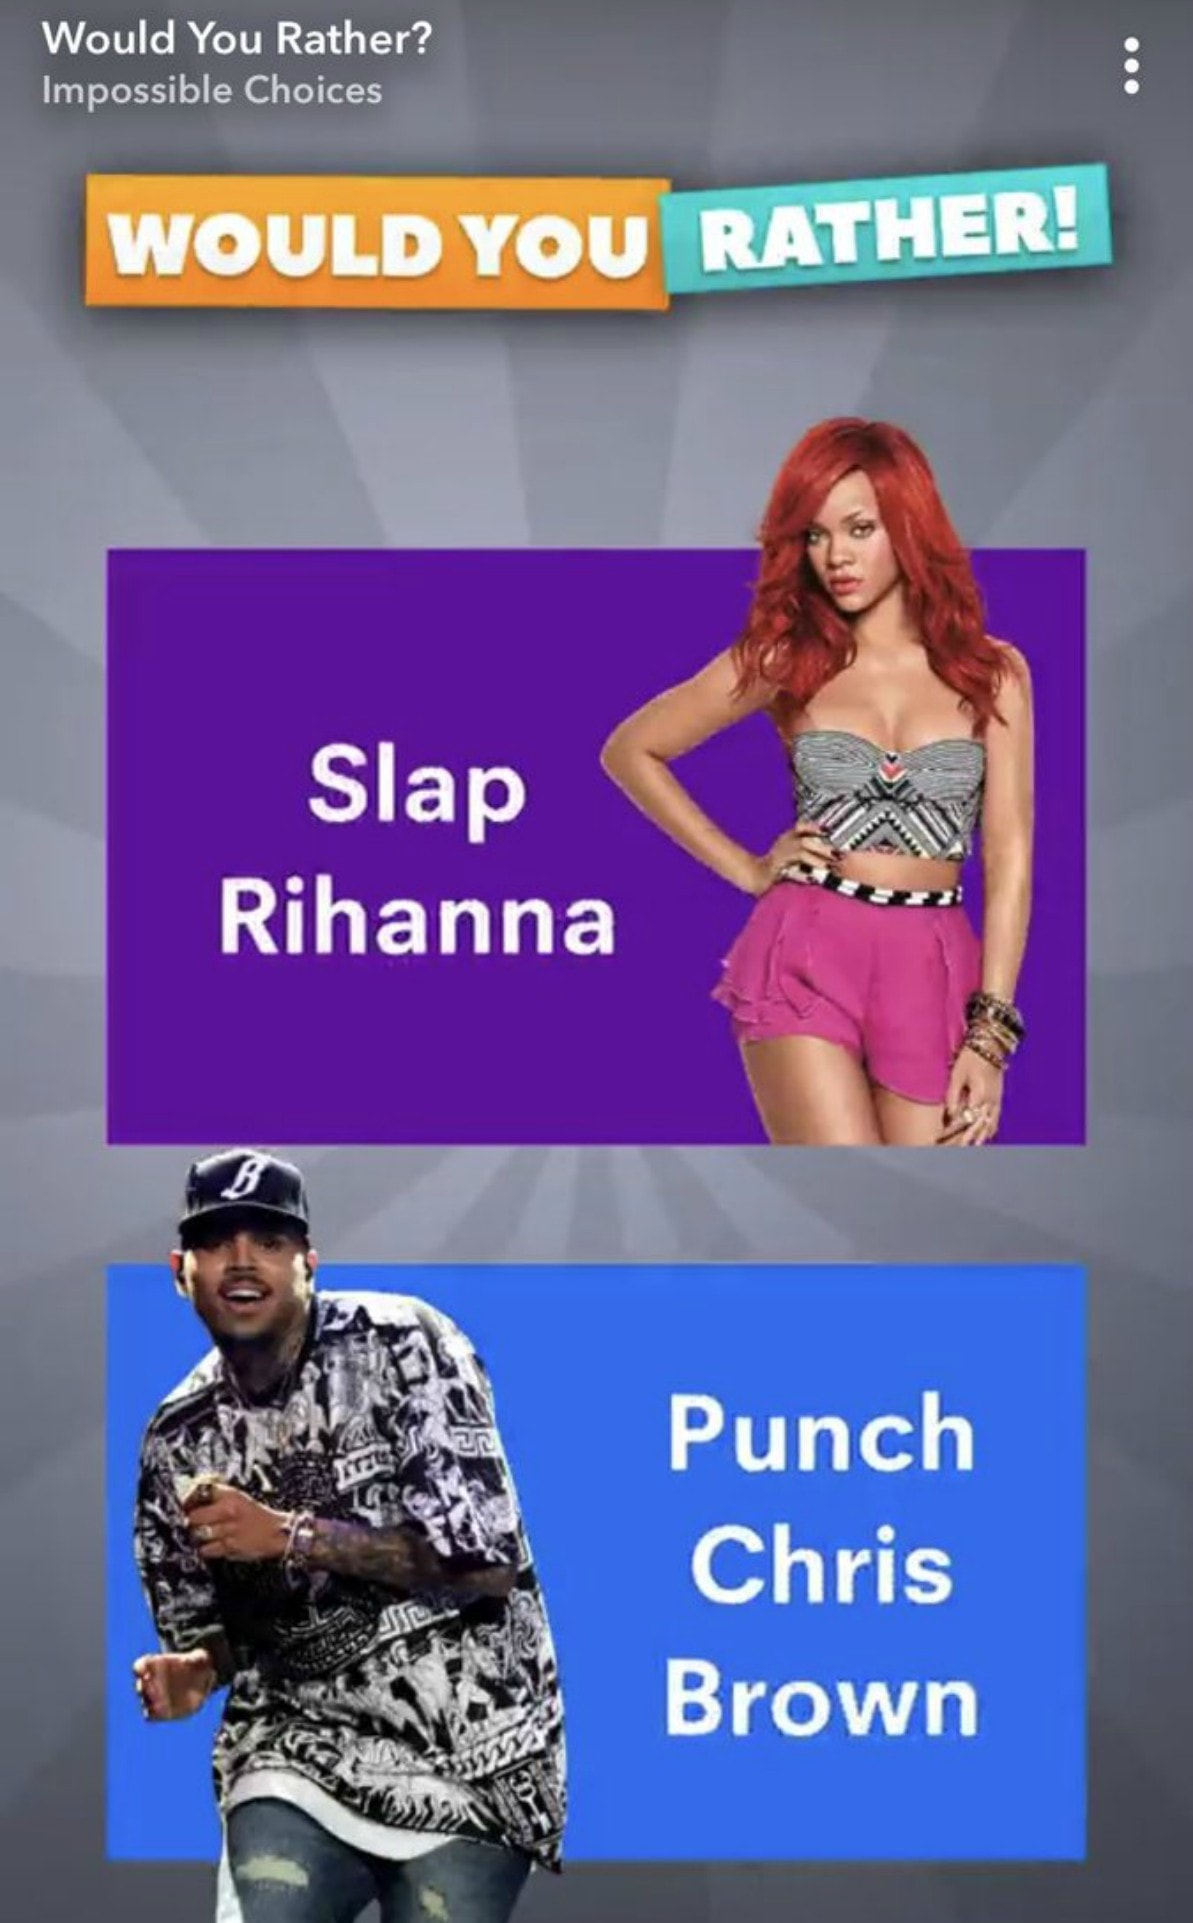 """The commercial showed the two singers and asked Snapchat users whether they would rather """"slap Rihanna"""" or """"punch Chris Brown"""""""